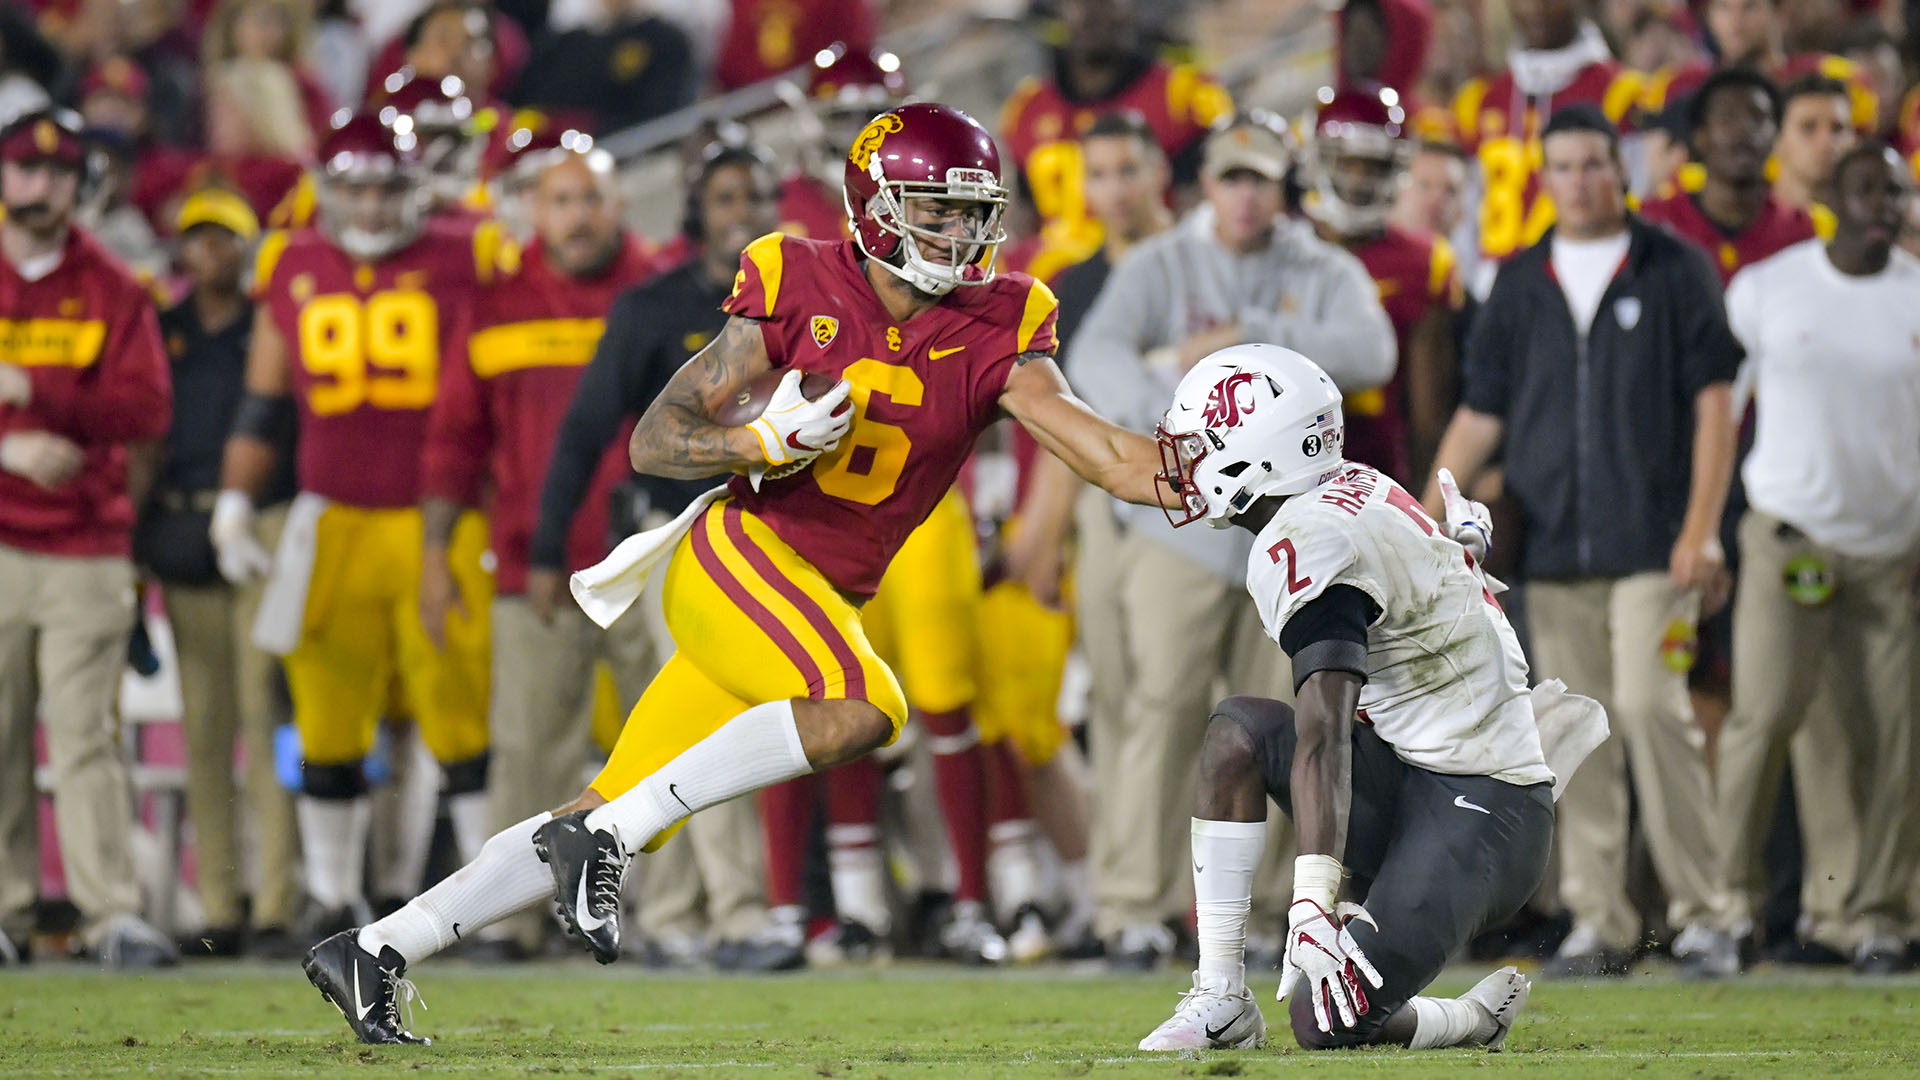 Usc Trojans Football >> Usc Football Welcomes Arizona State In Pac 12 South Matchup Usc